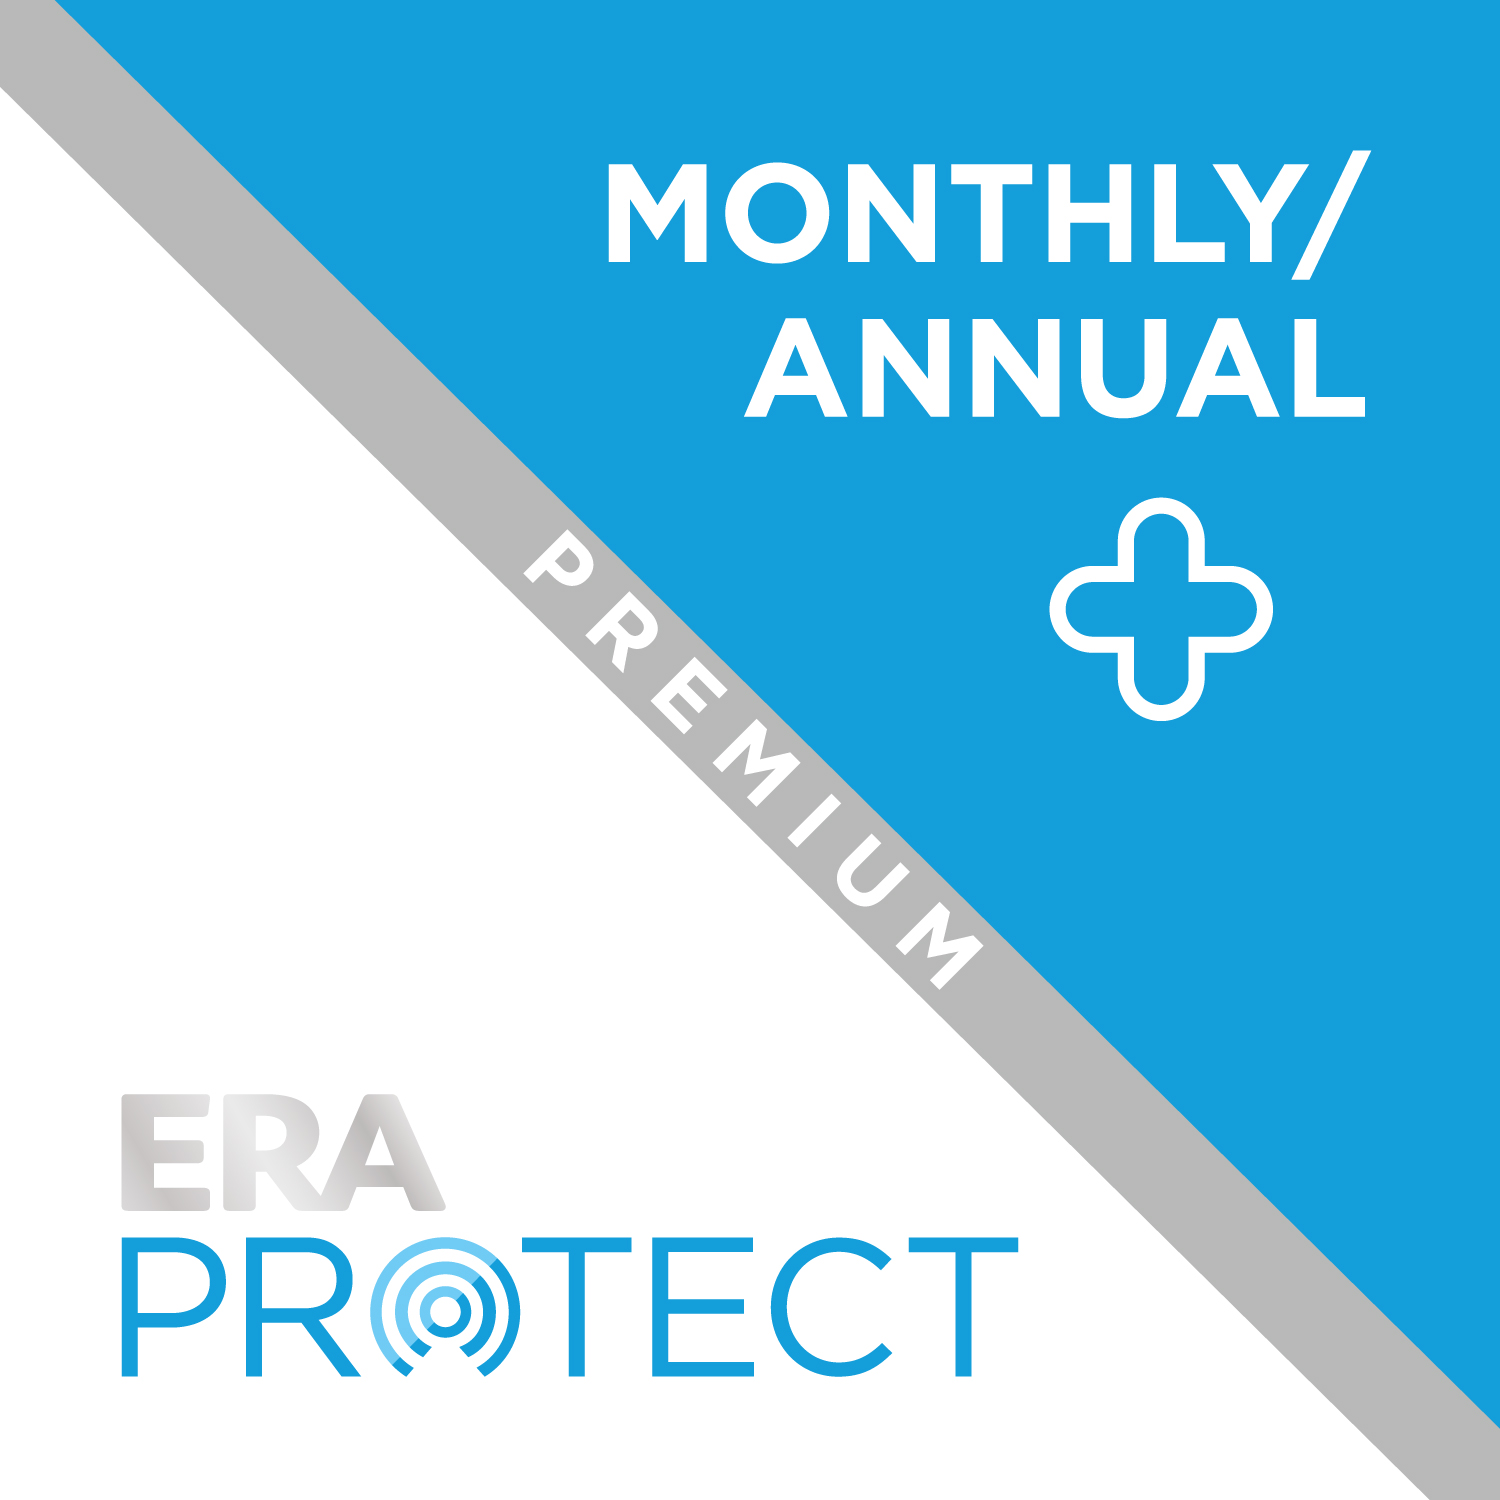 ERA Protect Monthly